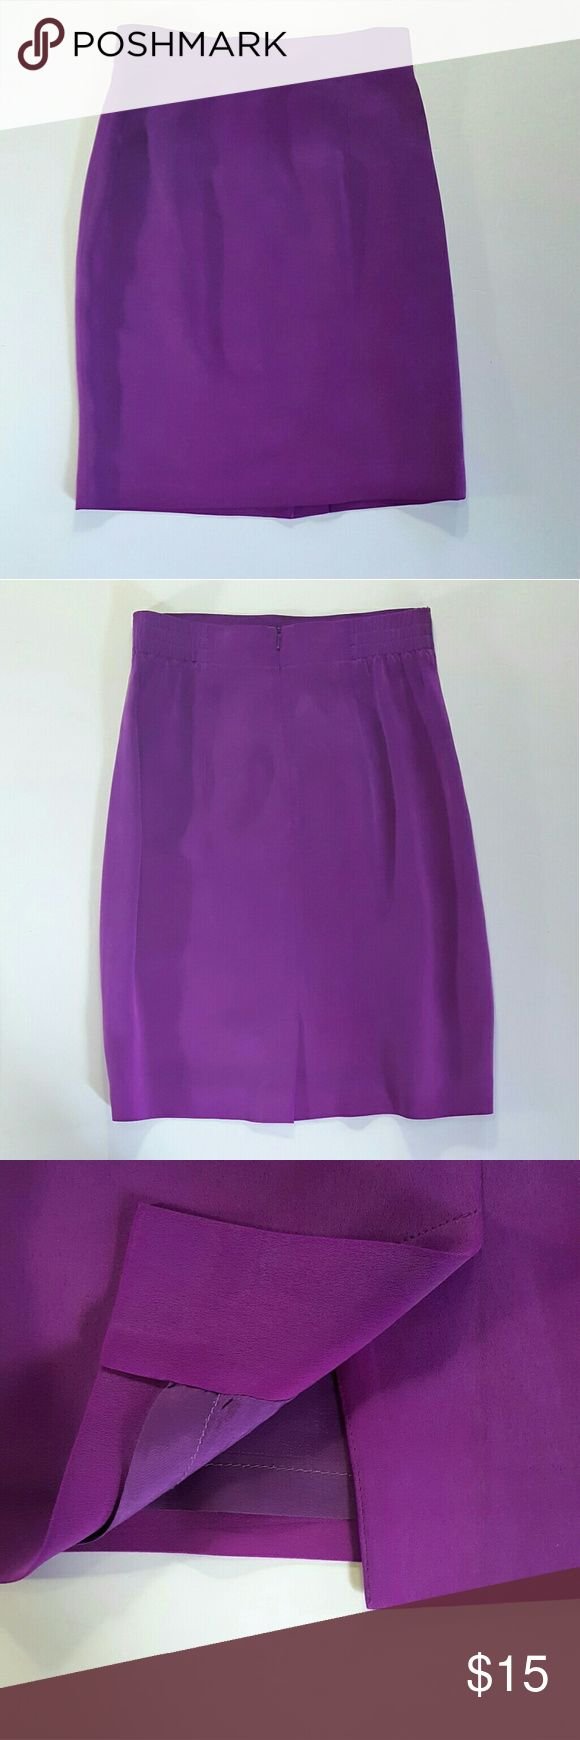 """Dana Buchman 100% Silk Skirt Very good overall condition with few signs of wear. Some minor fading if any.  22"""" length, 13 1/2"""" across waist. Elastic at back of waist, short slit on back. Very lively shade of purple (keep in mind that I tried to get the exact shade/ correct color but actual colors vary according to light and screens). Dana Buchman Skirts Midi"""